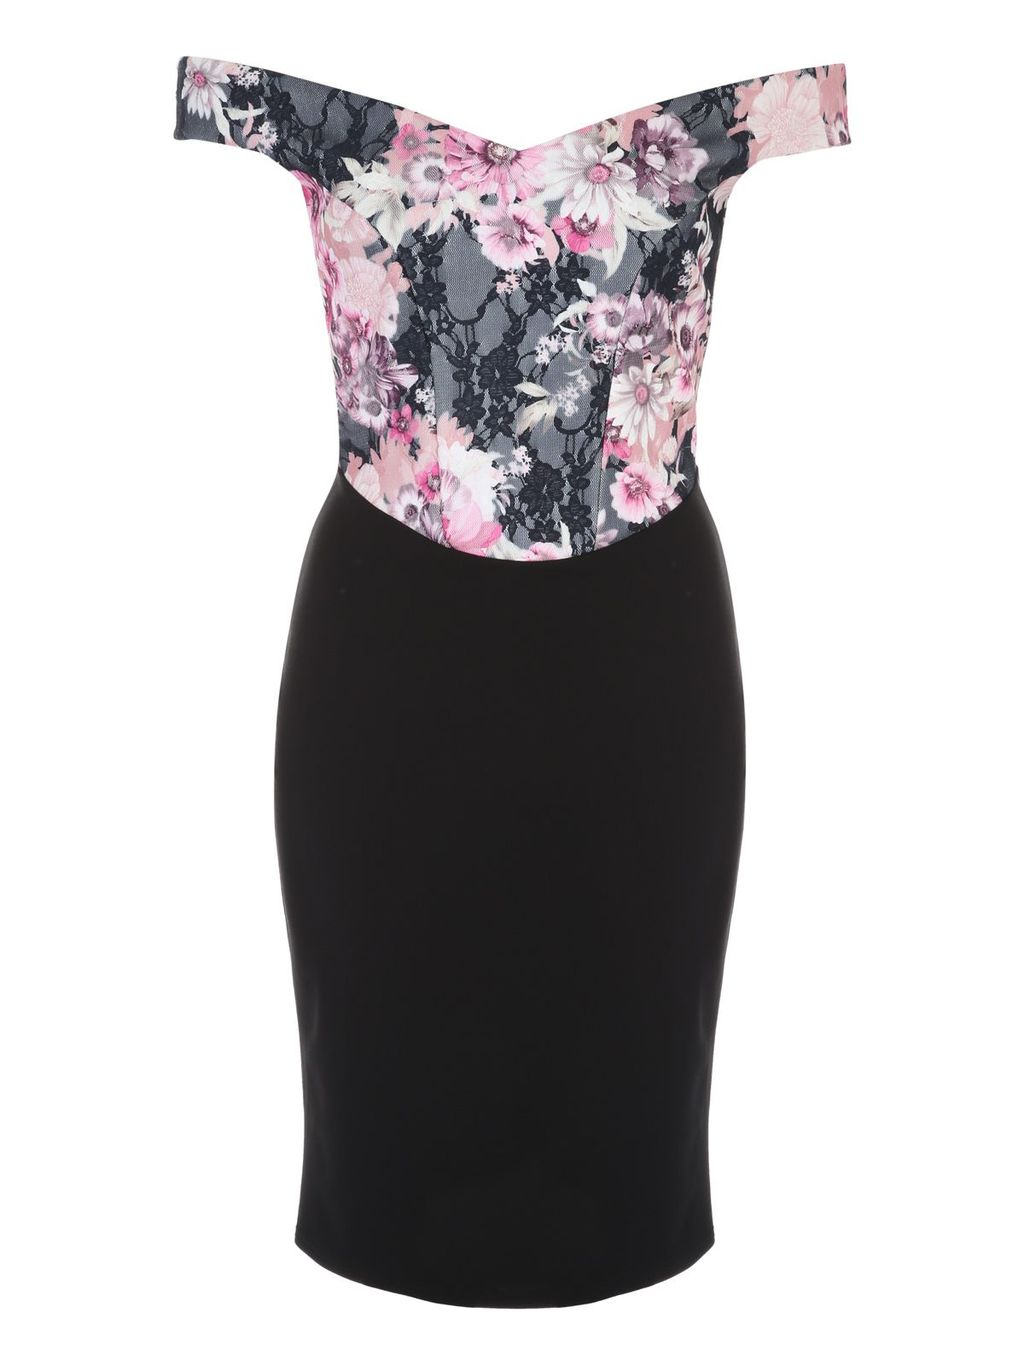 Black Floral Bonded Lace Bardot Dress, Multi Coloured - neckline: off the shoulder; sleeve style: capped; fit: tight; style: bodycon; secondary colour: pink; predominant colour: black; occasions: evening, occasion; length: just above the knee; fibres: polyester/polyamide - stretch; sleeve length: short sleeve; texture group: jersey - clingy; pattern type: fabric; pattern size: big & busy; pattern: florals; multicoloured: multicoloured; season: s/s 2016; wardrobe: event